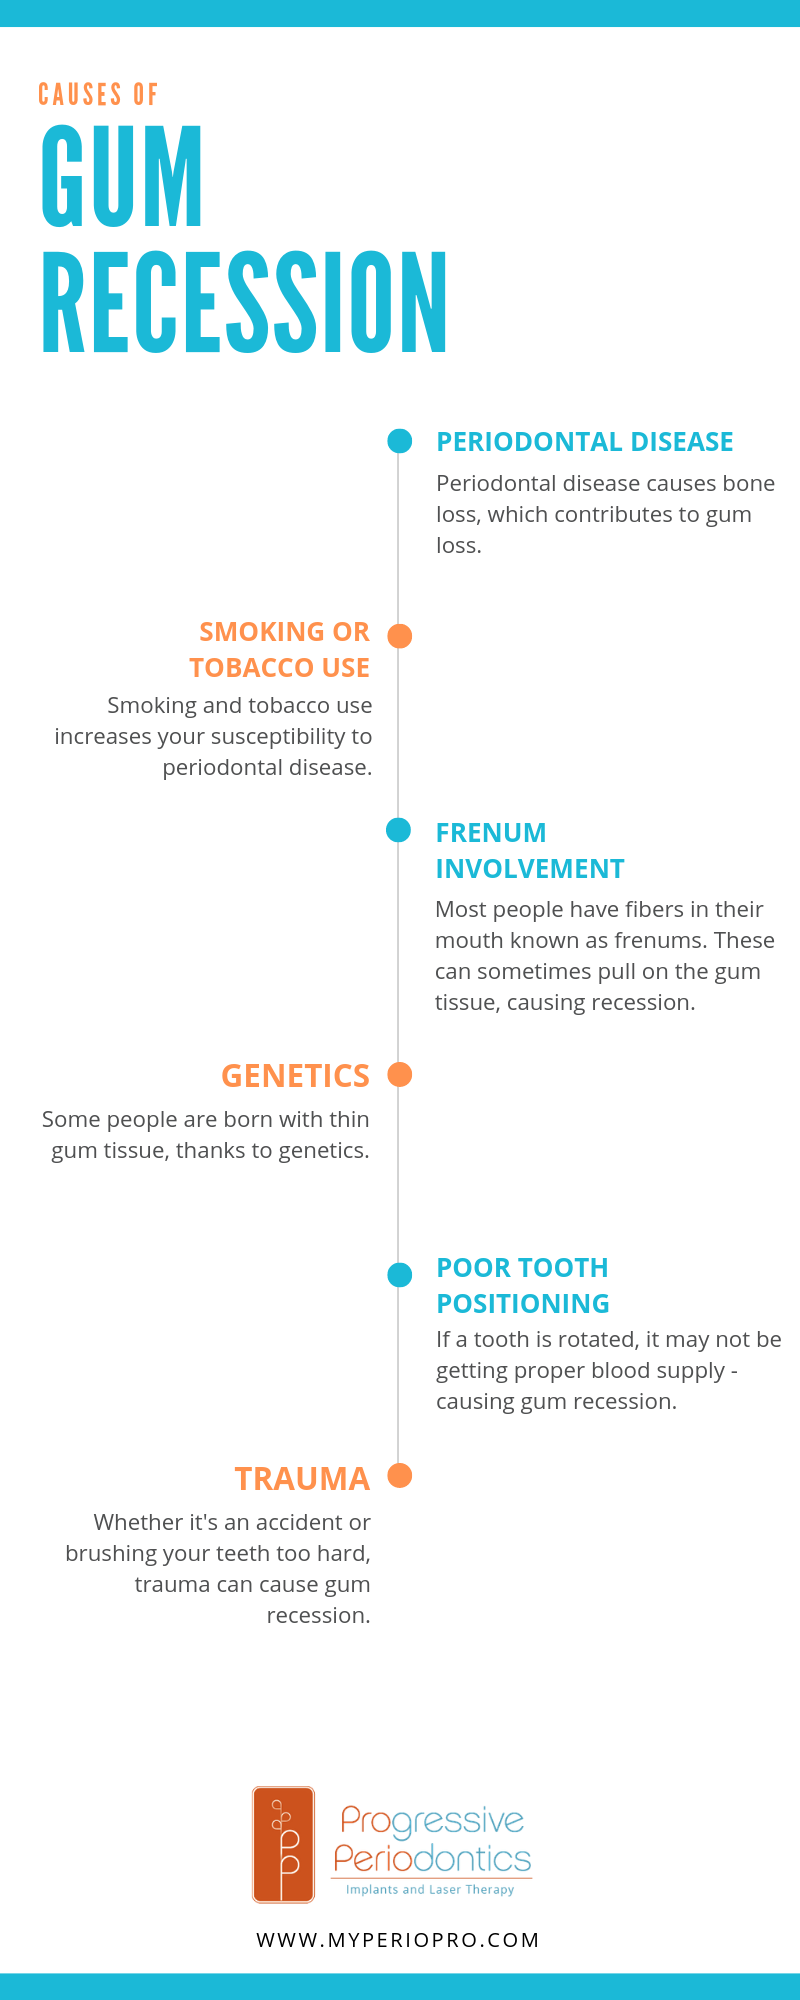 Causes of Gum Recession Infographic - All text listed below